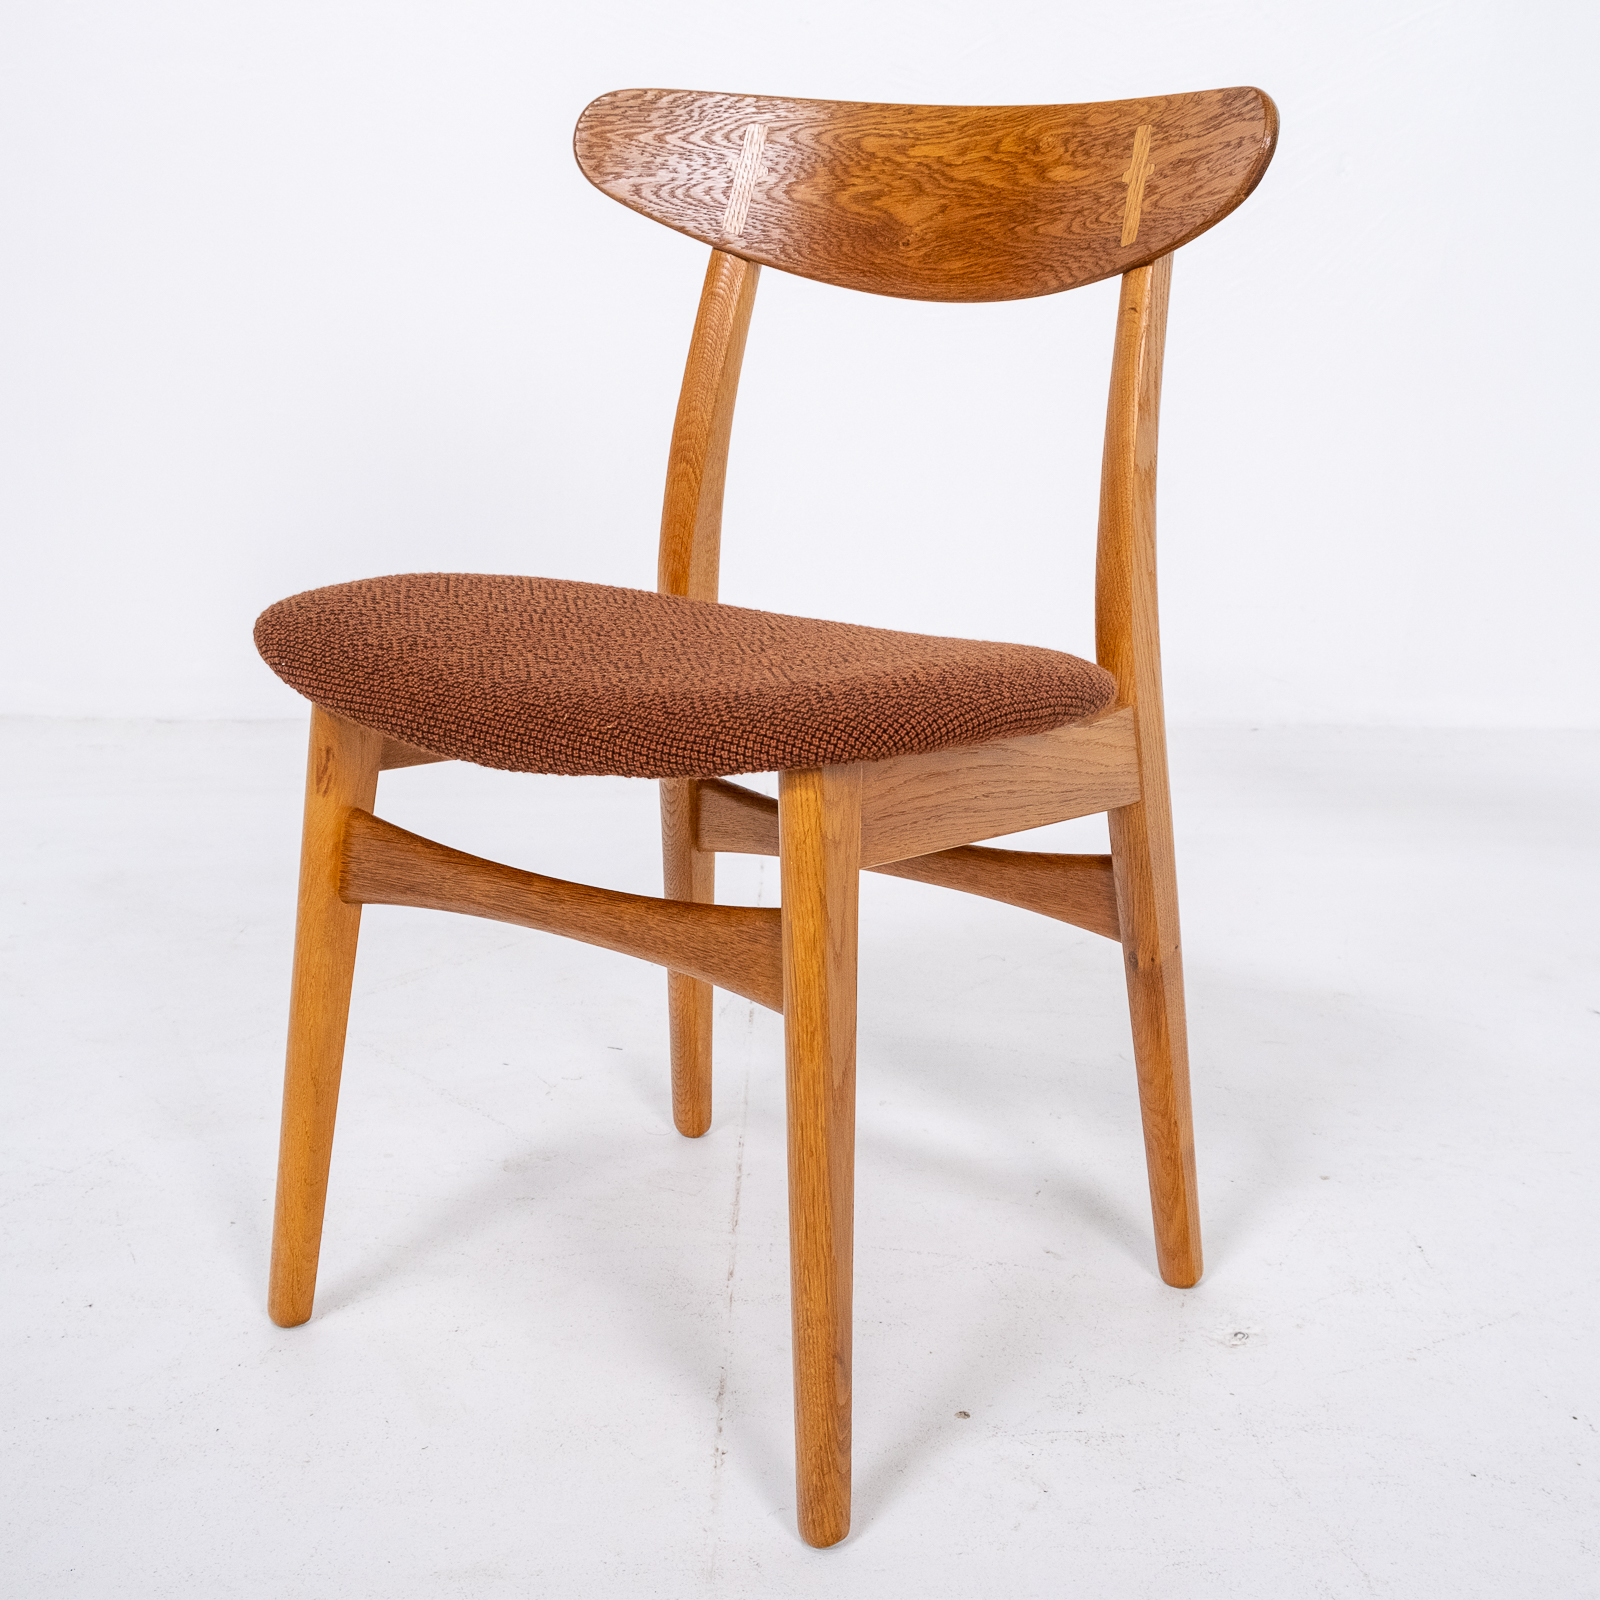 Set Of 4 Ch 30 Dining Chairs By Hans Wegner For Carl Hansen And Son In Oak And Kvadart Upholstery, 1950s, Denmark 03